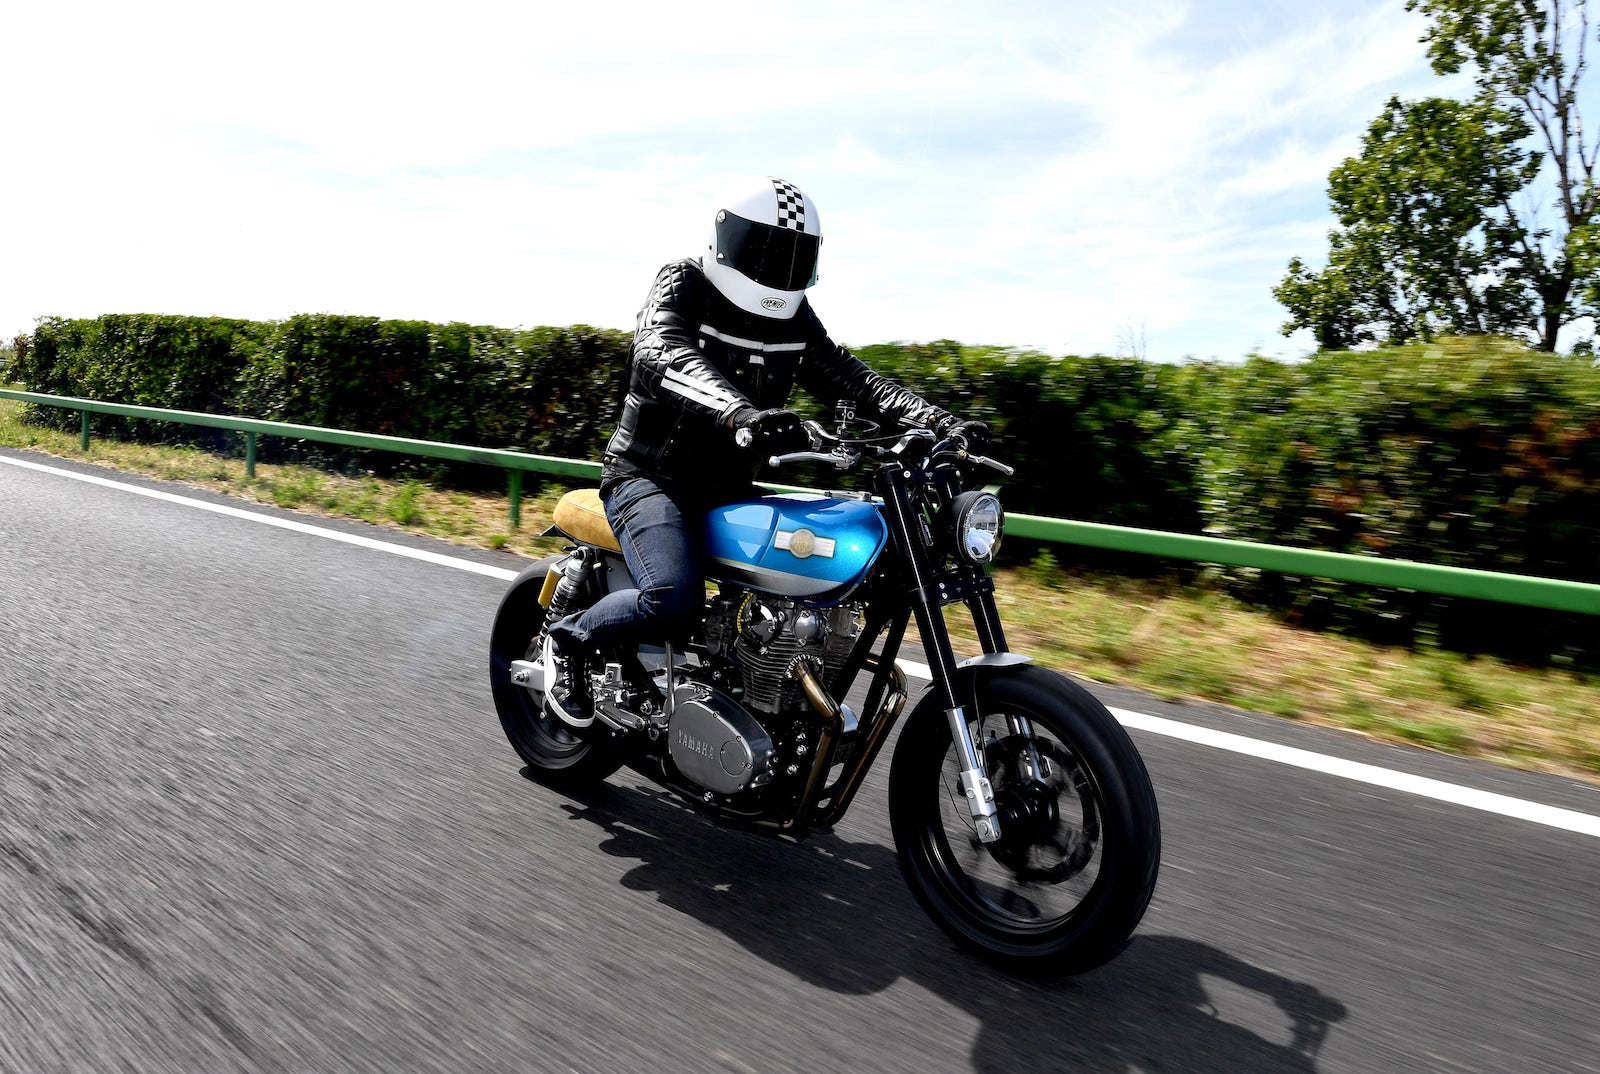 best of meilleur article 4H10 Mutuelle des motards